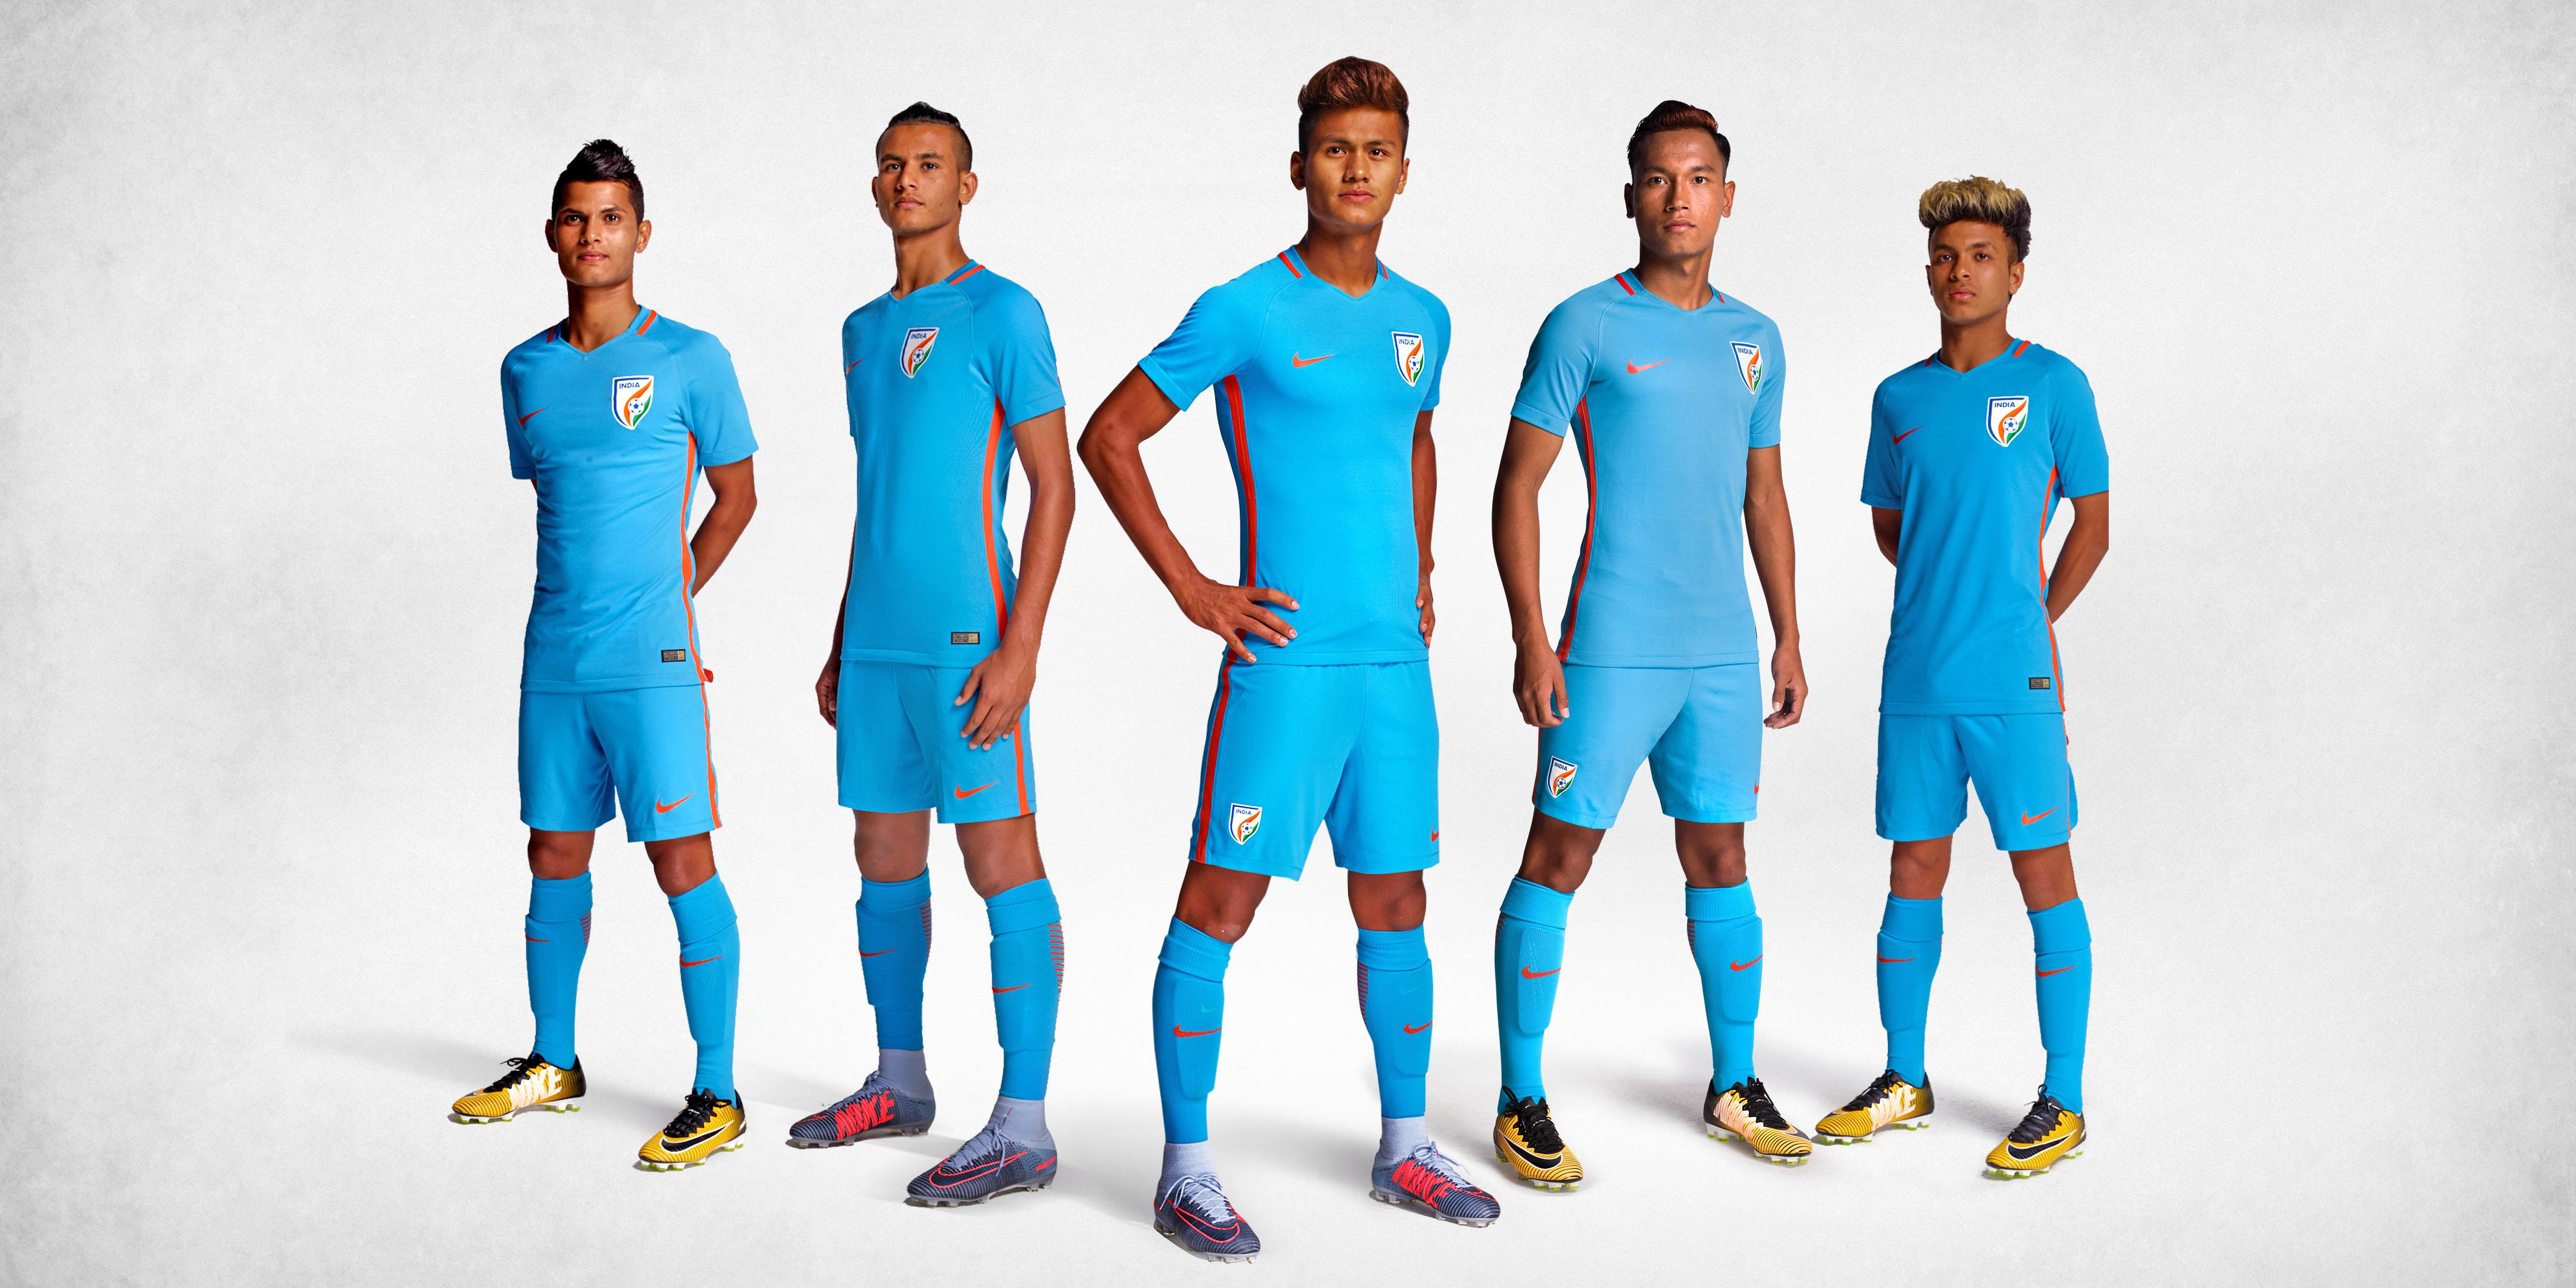 Apart from the original team kit that the players wear, a manufacturer usually produces at least two other variants for retail (Image: AIFF)